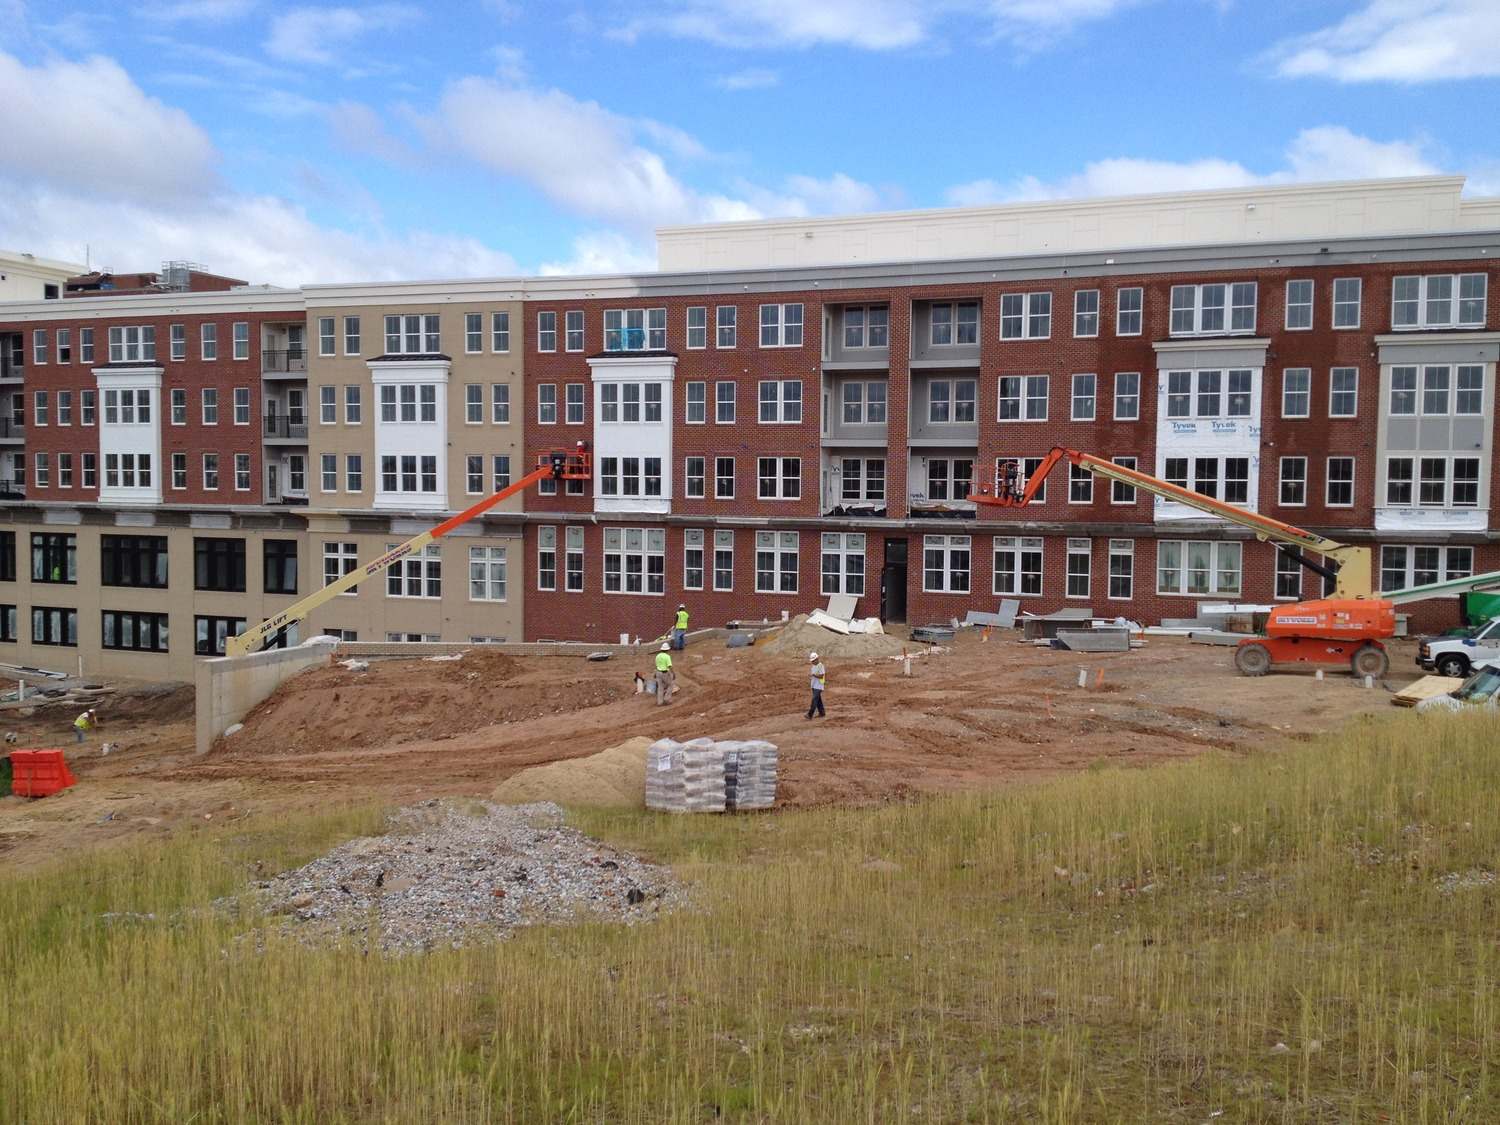 CBG builds Jefferson Square at Washington Hill, a 304-Unit Mixed-Use Apartment Community with Cast-in-Place Parking Garage in Baltimore, MD - Image #10